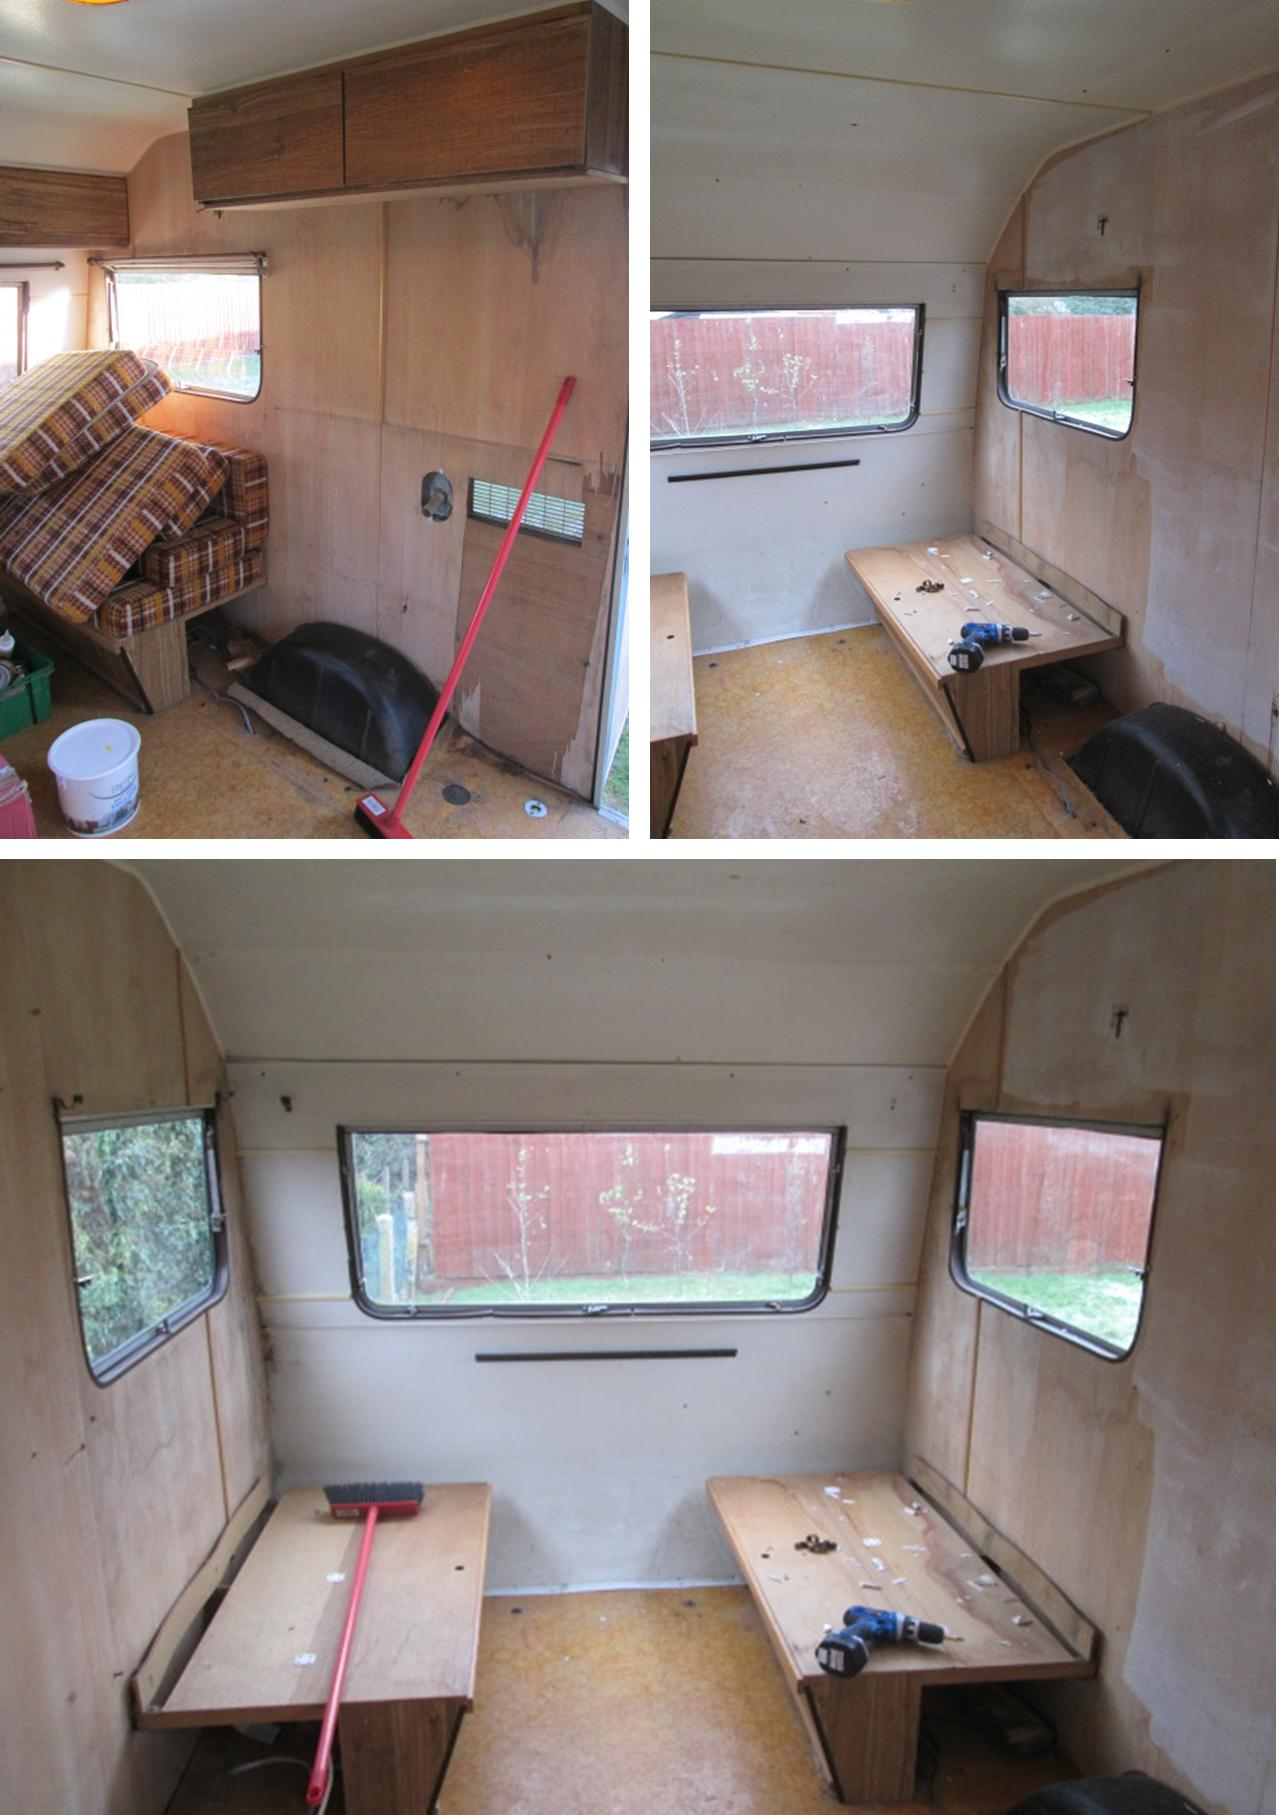 My little vintage caravan project clearing out the old Diy caravan interior design ideas